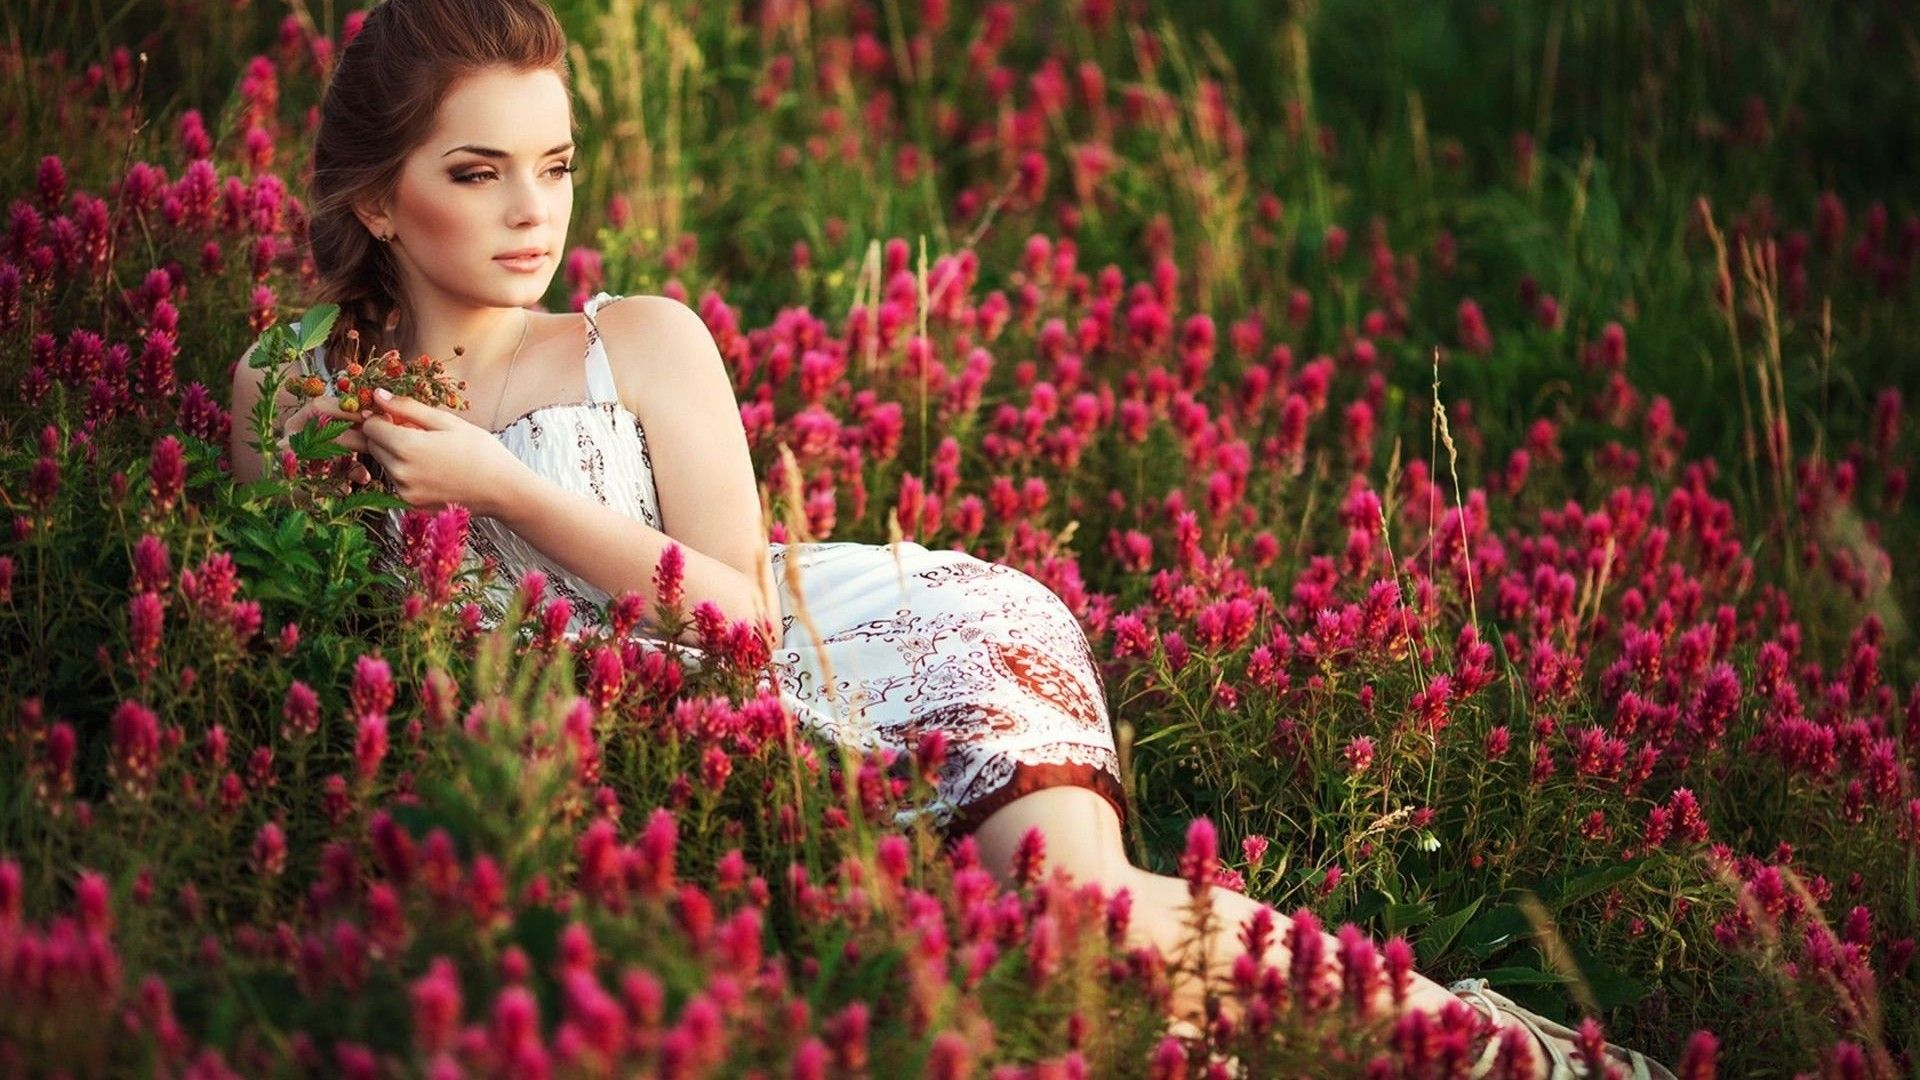 Nice most beautiful girl ever in flower garden for World nice photo